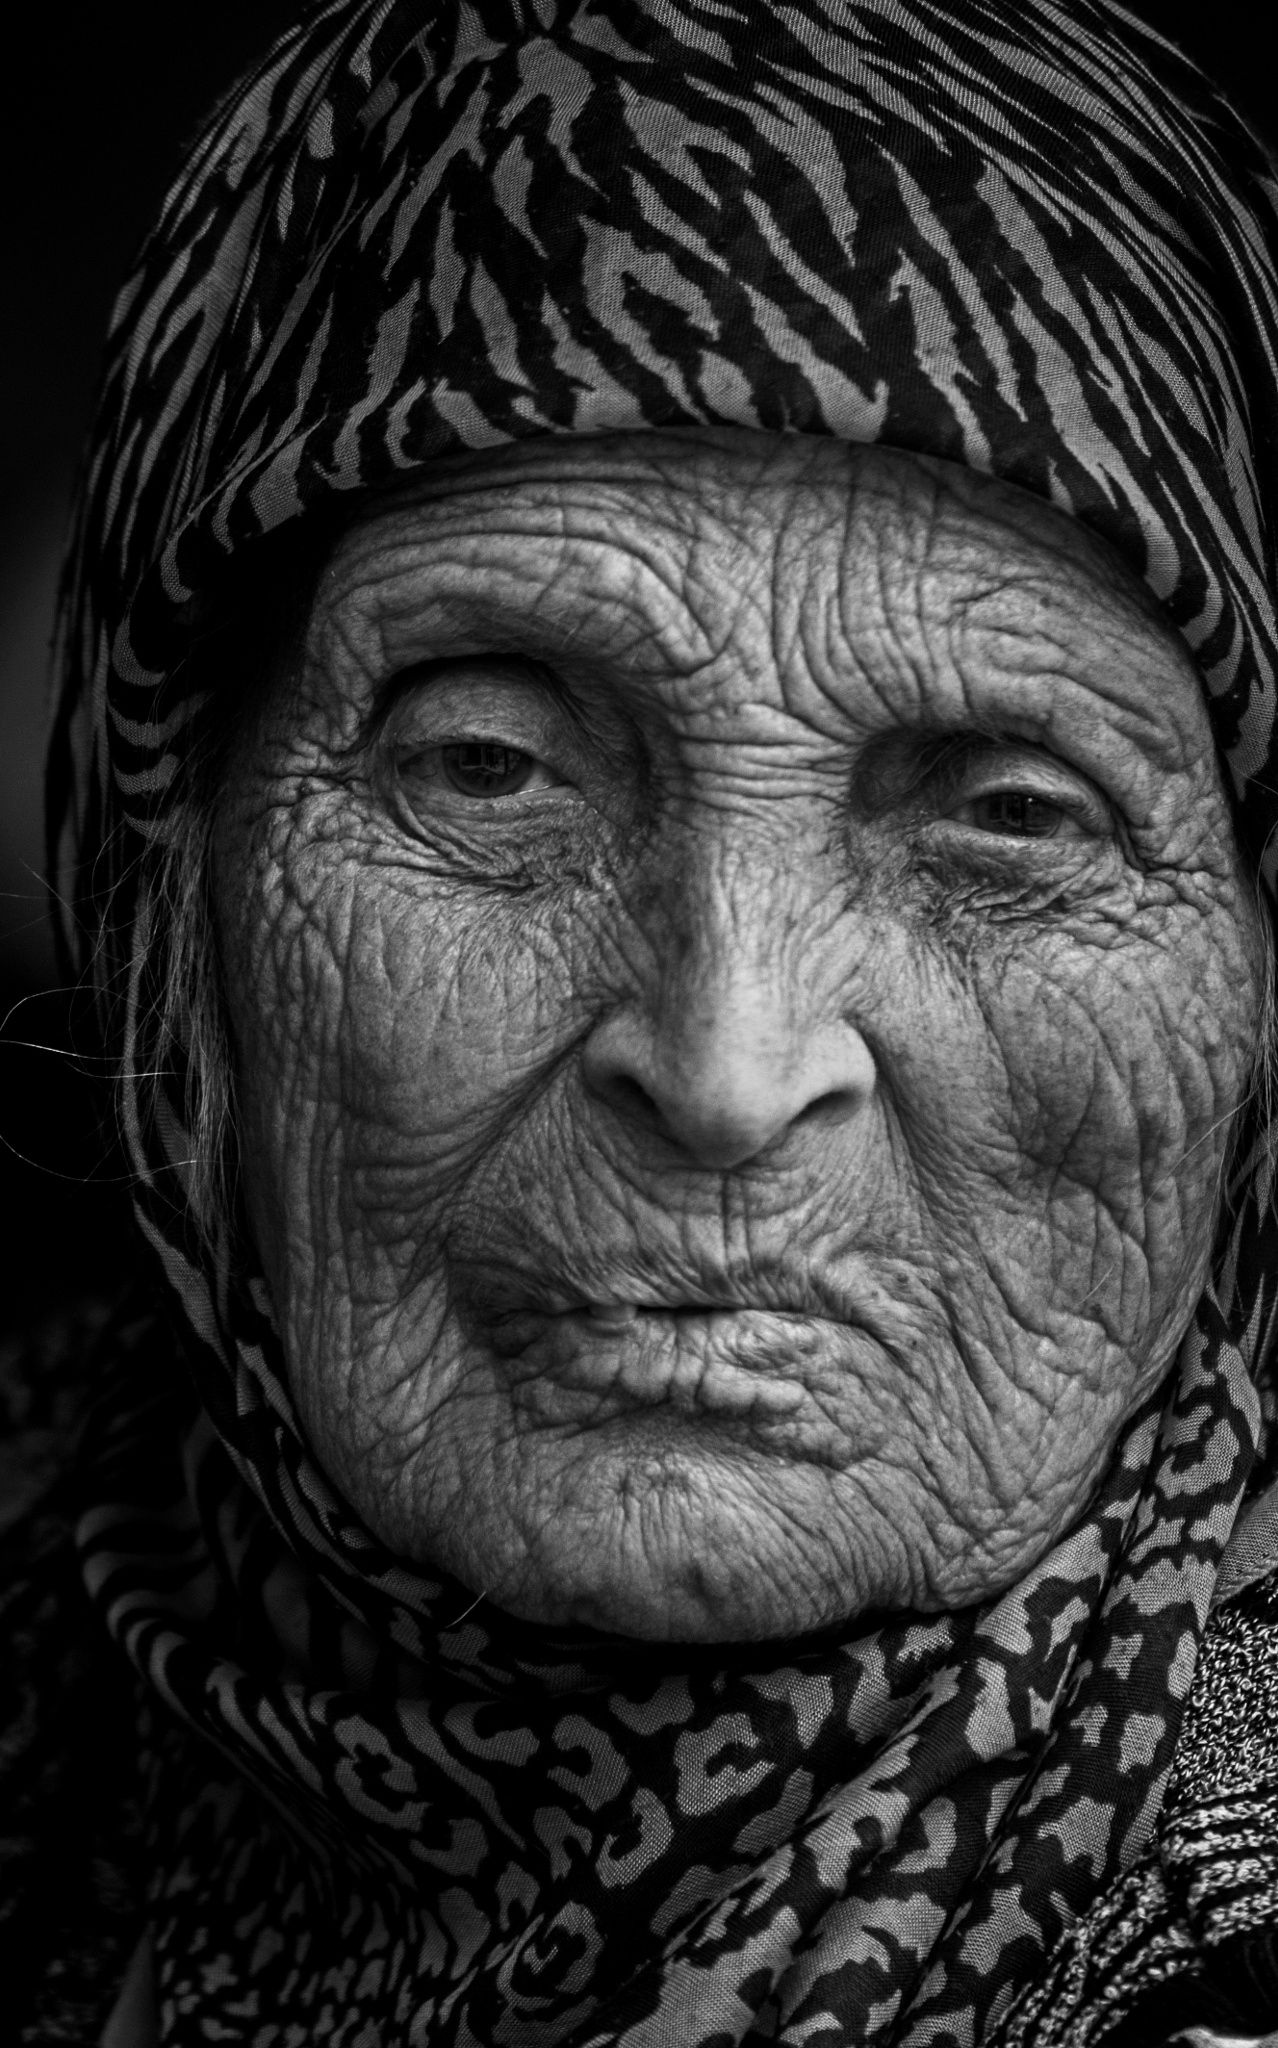 Black and white face portraits old faces life is hard unique faces